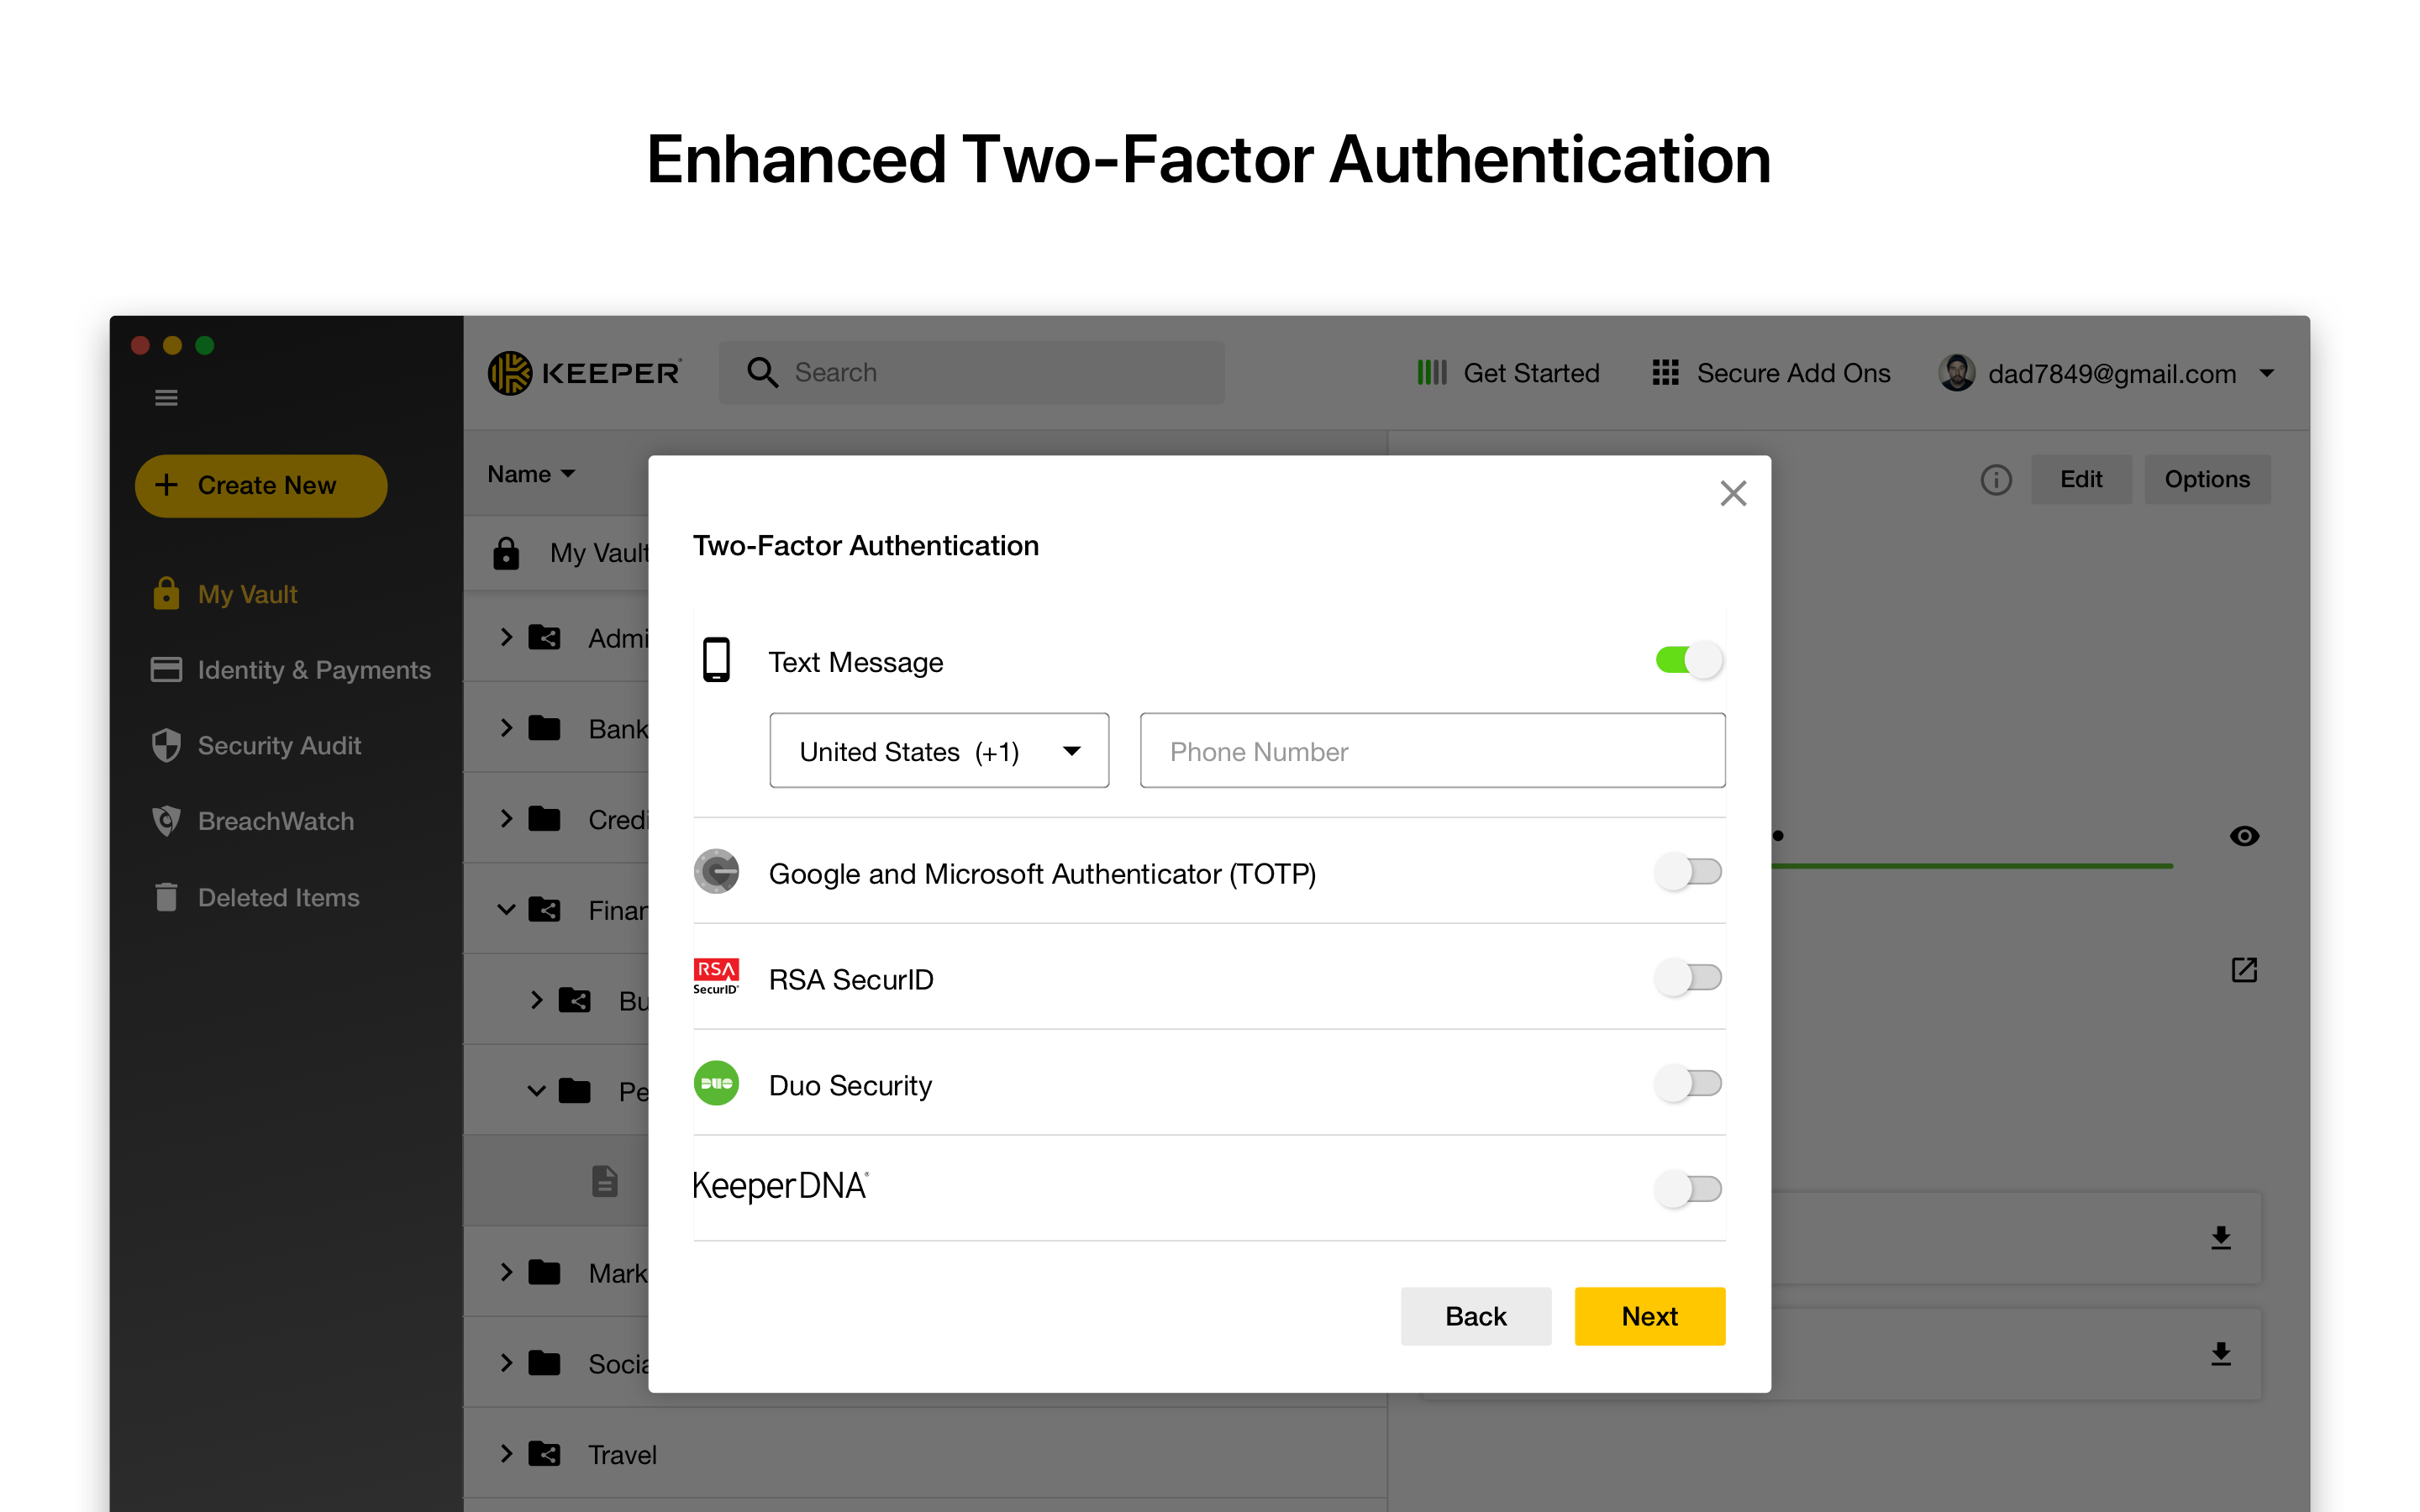 Keeper Demo - Enhanced Two-Factor Authentication